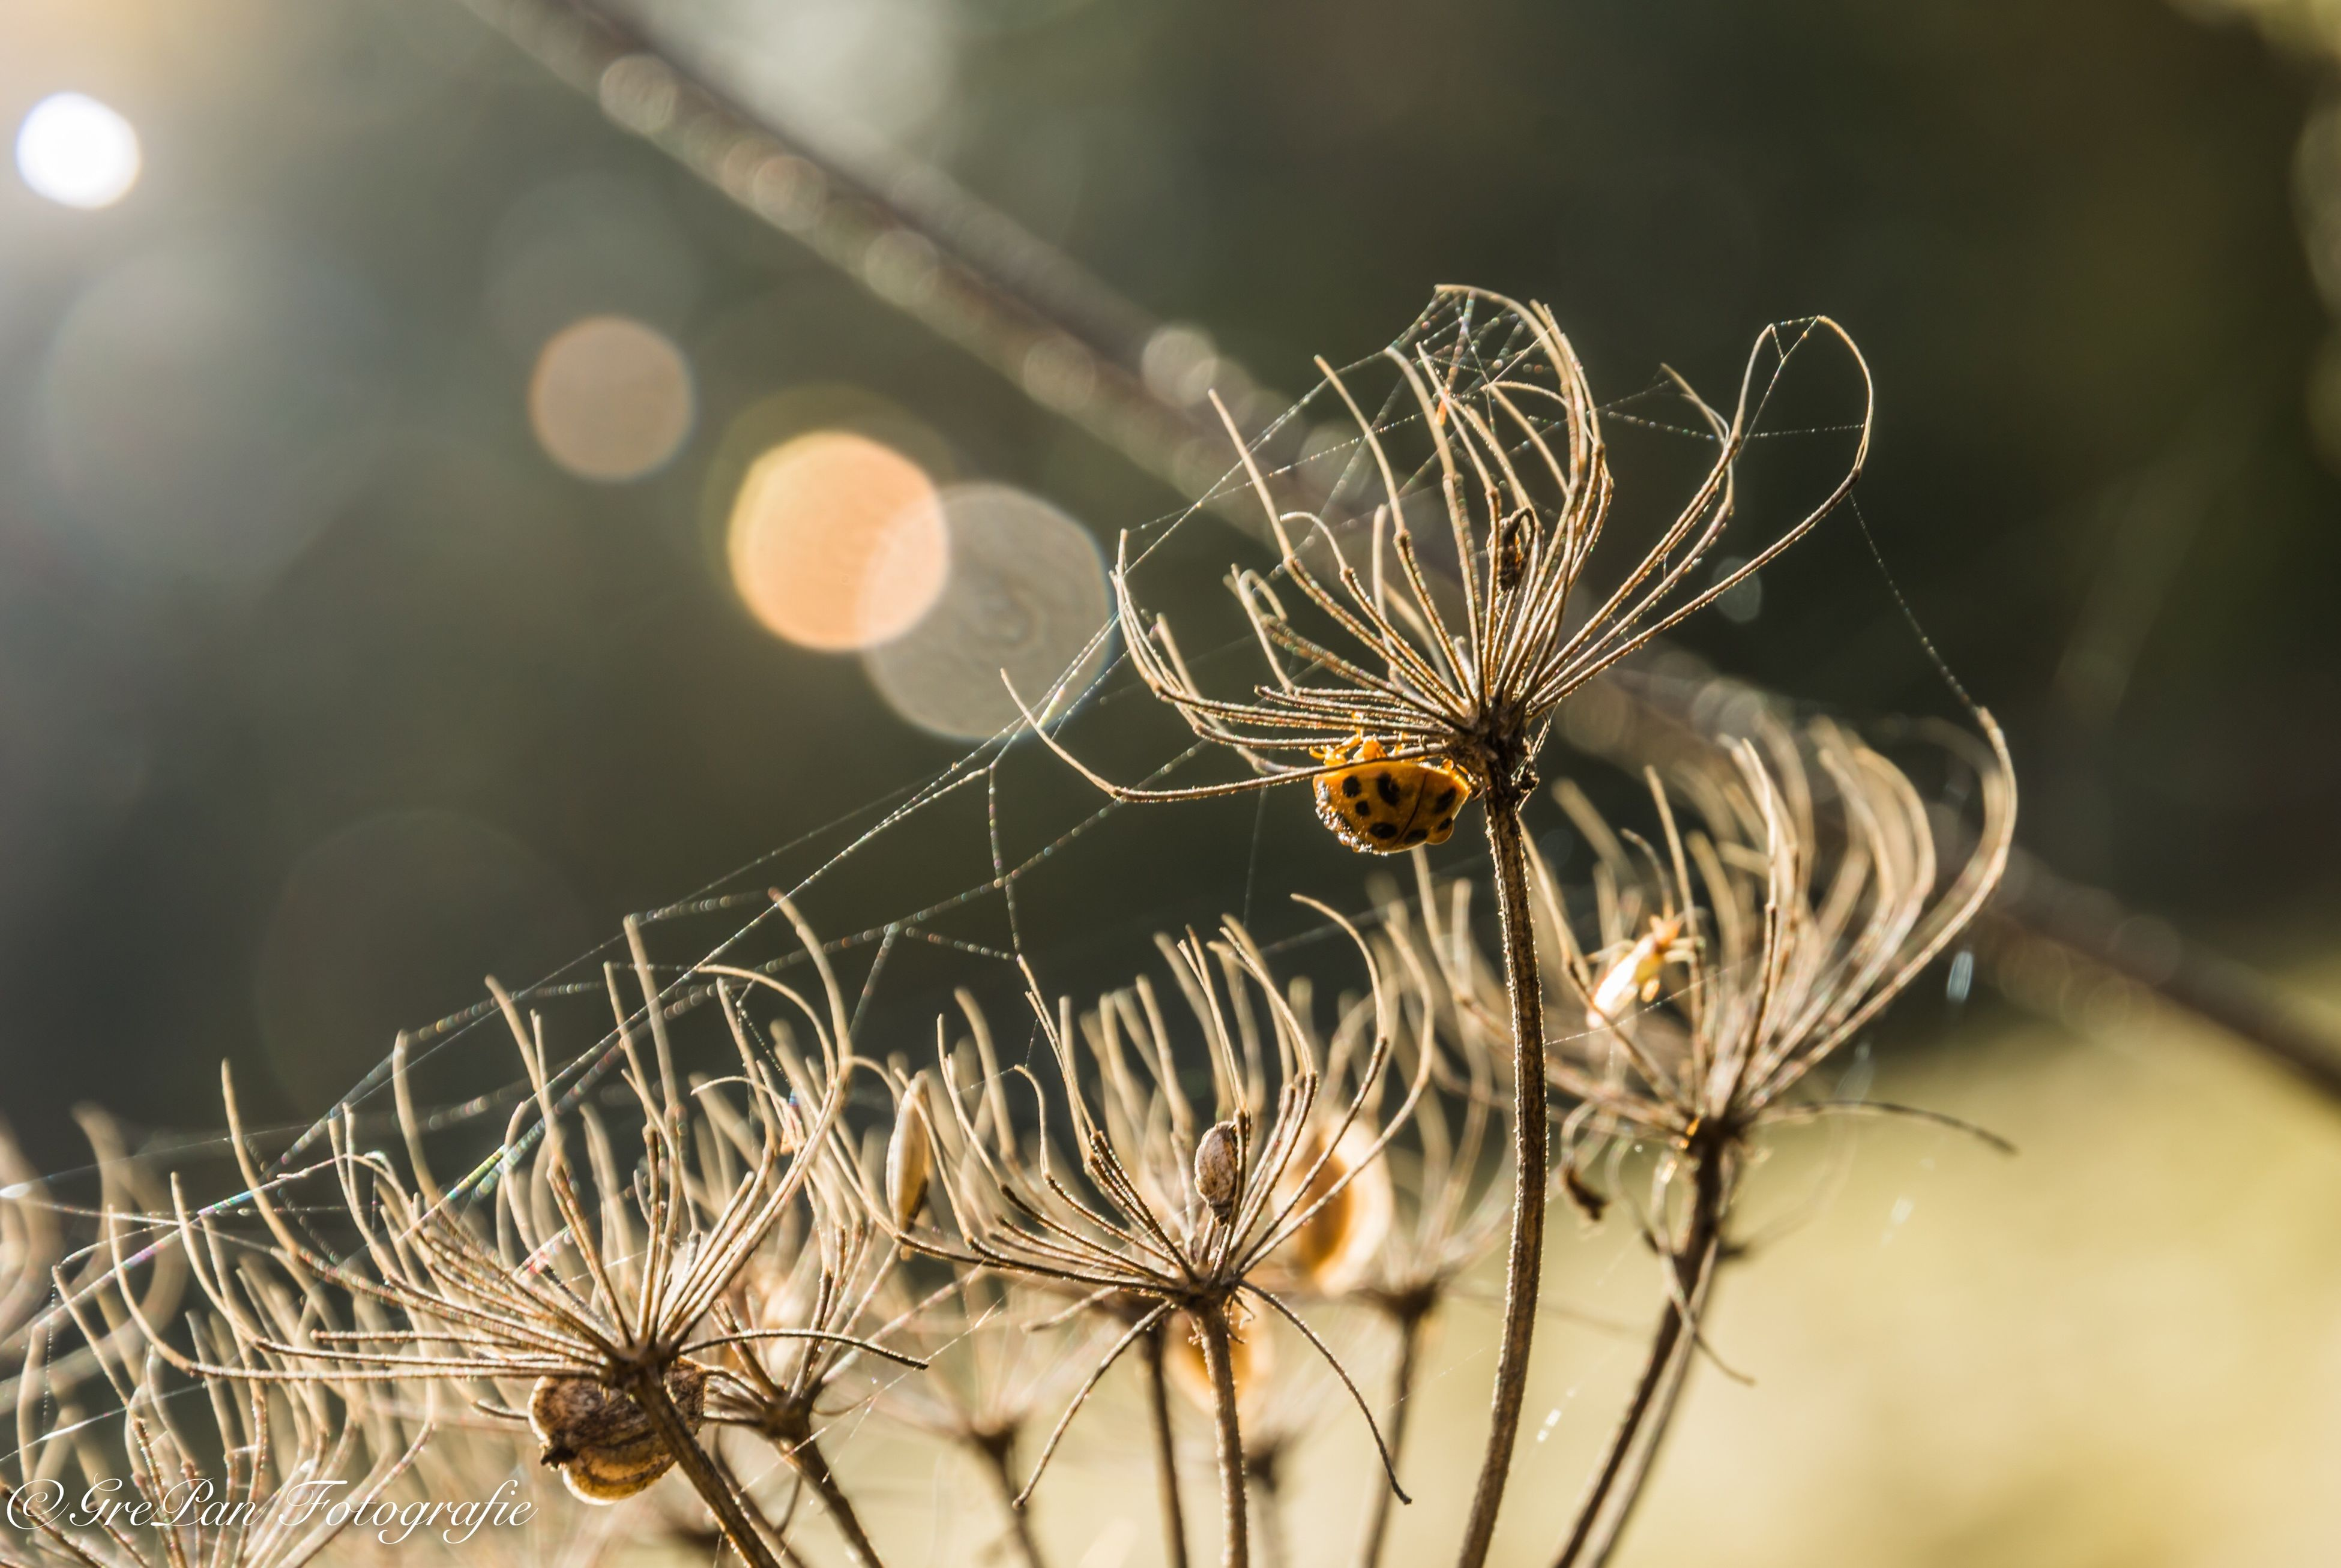 focus on foreground, spider web, nature, close-up, one animal, spider, no people, insect, outdoors, animals in the wild, animal themes, fragility, day, beauty in nature, web